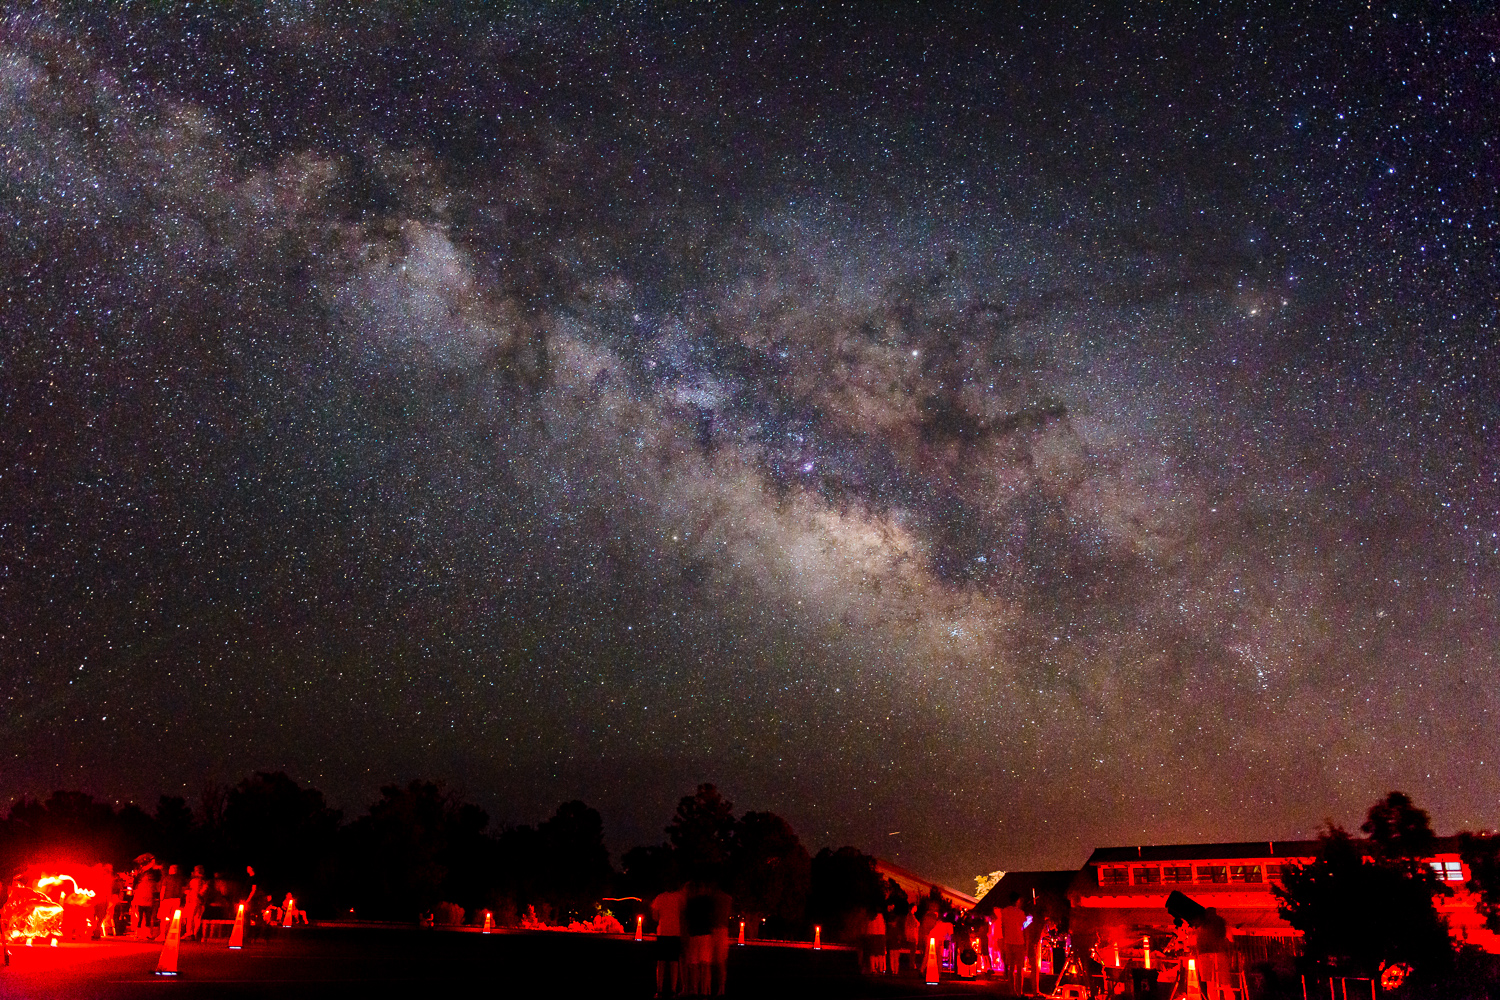 Star Party at the Grand Canyon Visitor Center - Nikon D5300 with Sigma 18-35 1.8